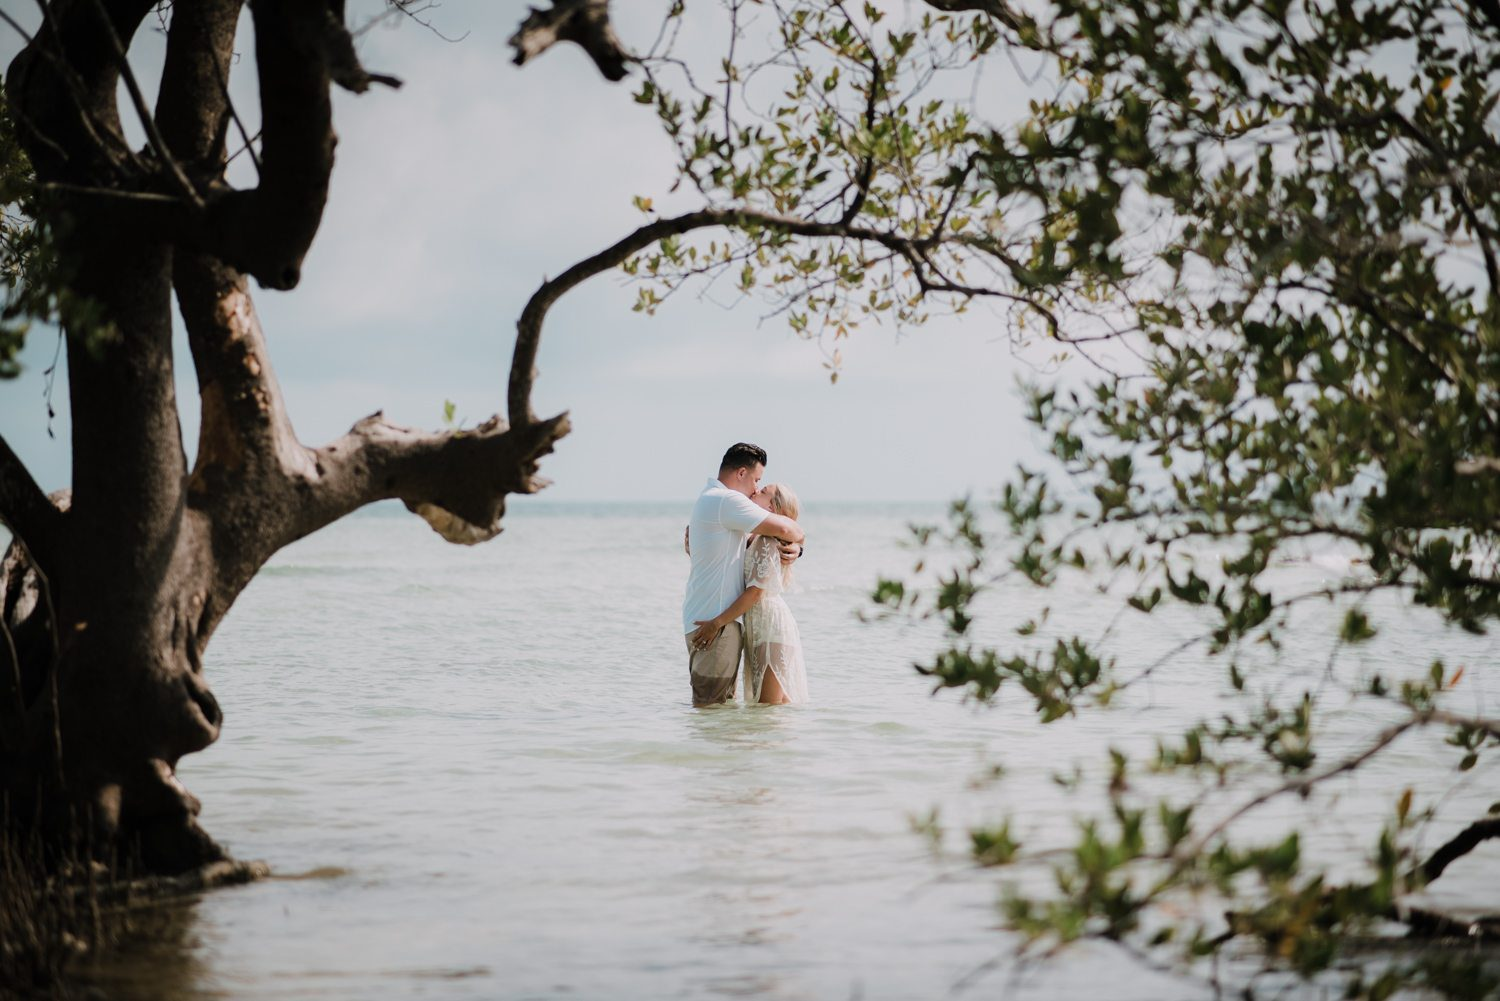 fort zachary taylor snipes key west engagement 41 - Key West Engagement Session - Cecilia & Dominick